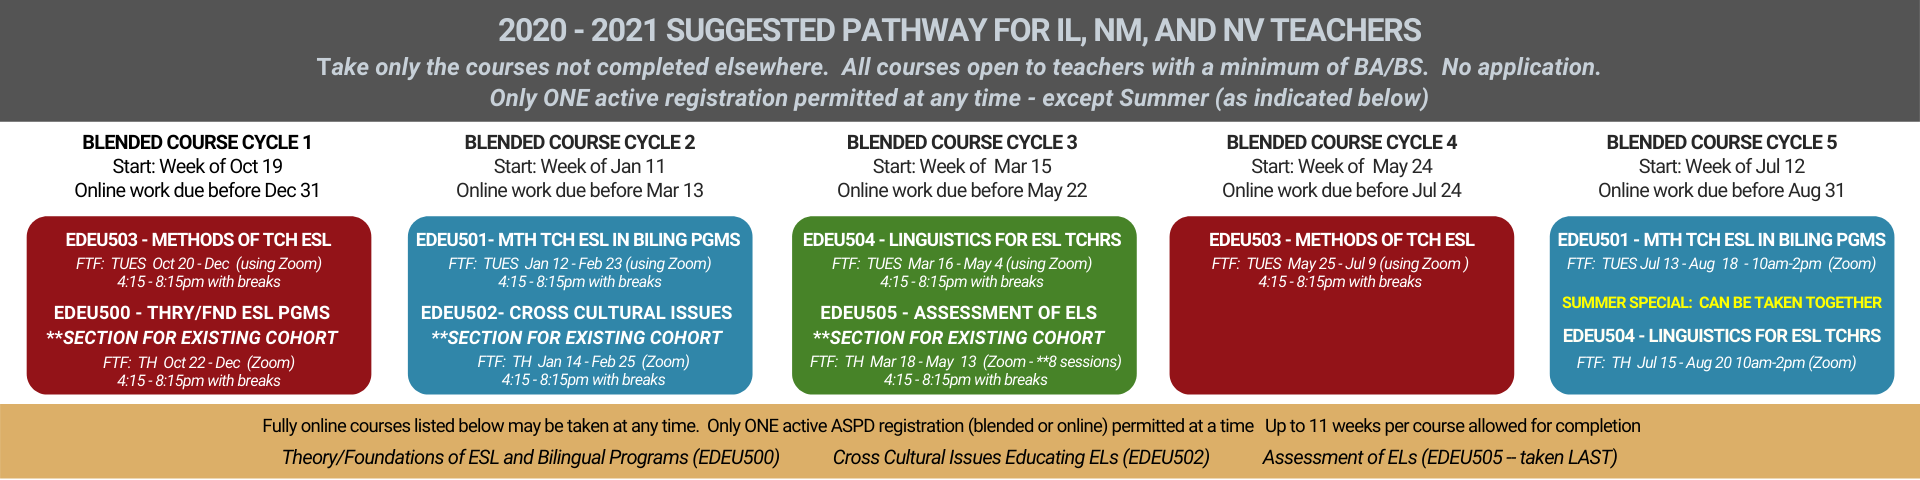 ESL/Bilingual Endorsement Fast Track Alternative Pathway  2021 SUGGESTED PATHWAY FOR TEACHERS NEEDING IL, NM, NV ESL Endorsements, IL Bilingual Endorsements, New Mexico TESOL Endorsement, NEVADA TESOL Endorsement.  Teachers take only the courses not taken elsewhere.  All courses open to teachers with a minimum of BA/BS.  No application. EDEU503 - METHODS OF TEACHING ESL EDEU500 - Theory/Foundations of ESL and Bilingual Programs EDEU501 - METHODS OF TEACHING ESL IN BILINGUAL PROGRAMS  EDEU504 - Linguistics for ESL Teachers EDEU503 - METHODS OF TEACHING ESL EDEU501 - METHODS OF TEACHING ESL IN BILING PROGRAMS EDEU504 - Linguistics for ESL Teachers  Fully online courses listed below may be taken at any time (one course at a time).   Up to 11 weeks per course allowed for completion Thry/Fnd of ESL and Biling Pgms (EDEU500)             Cross Cultural Issues (EDEU502)             Assessment of ELs (EDEU505 -- taken LAST)